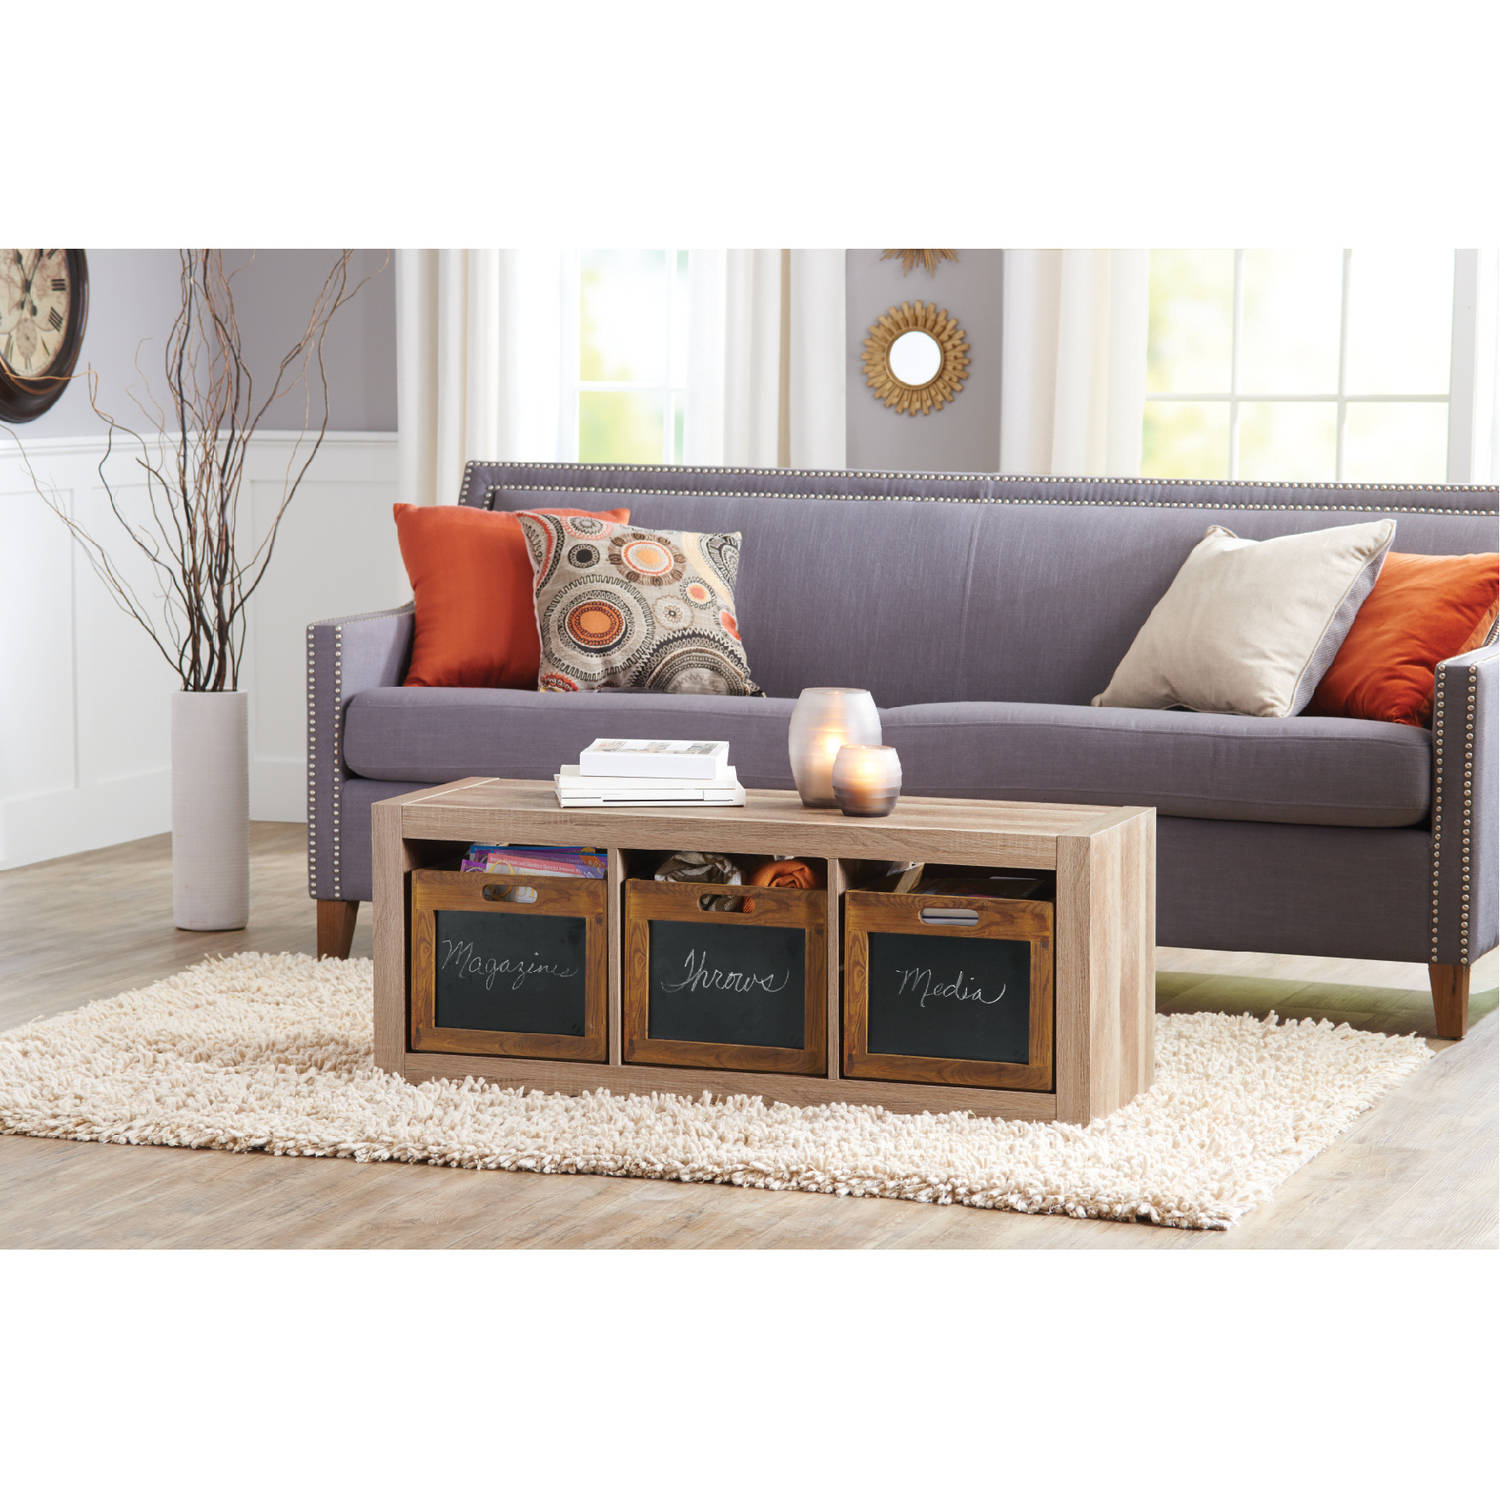 better homes and gardens wood decor crate walmart com